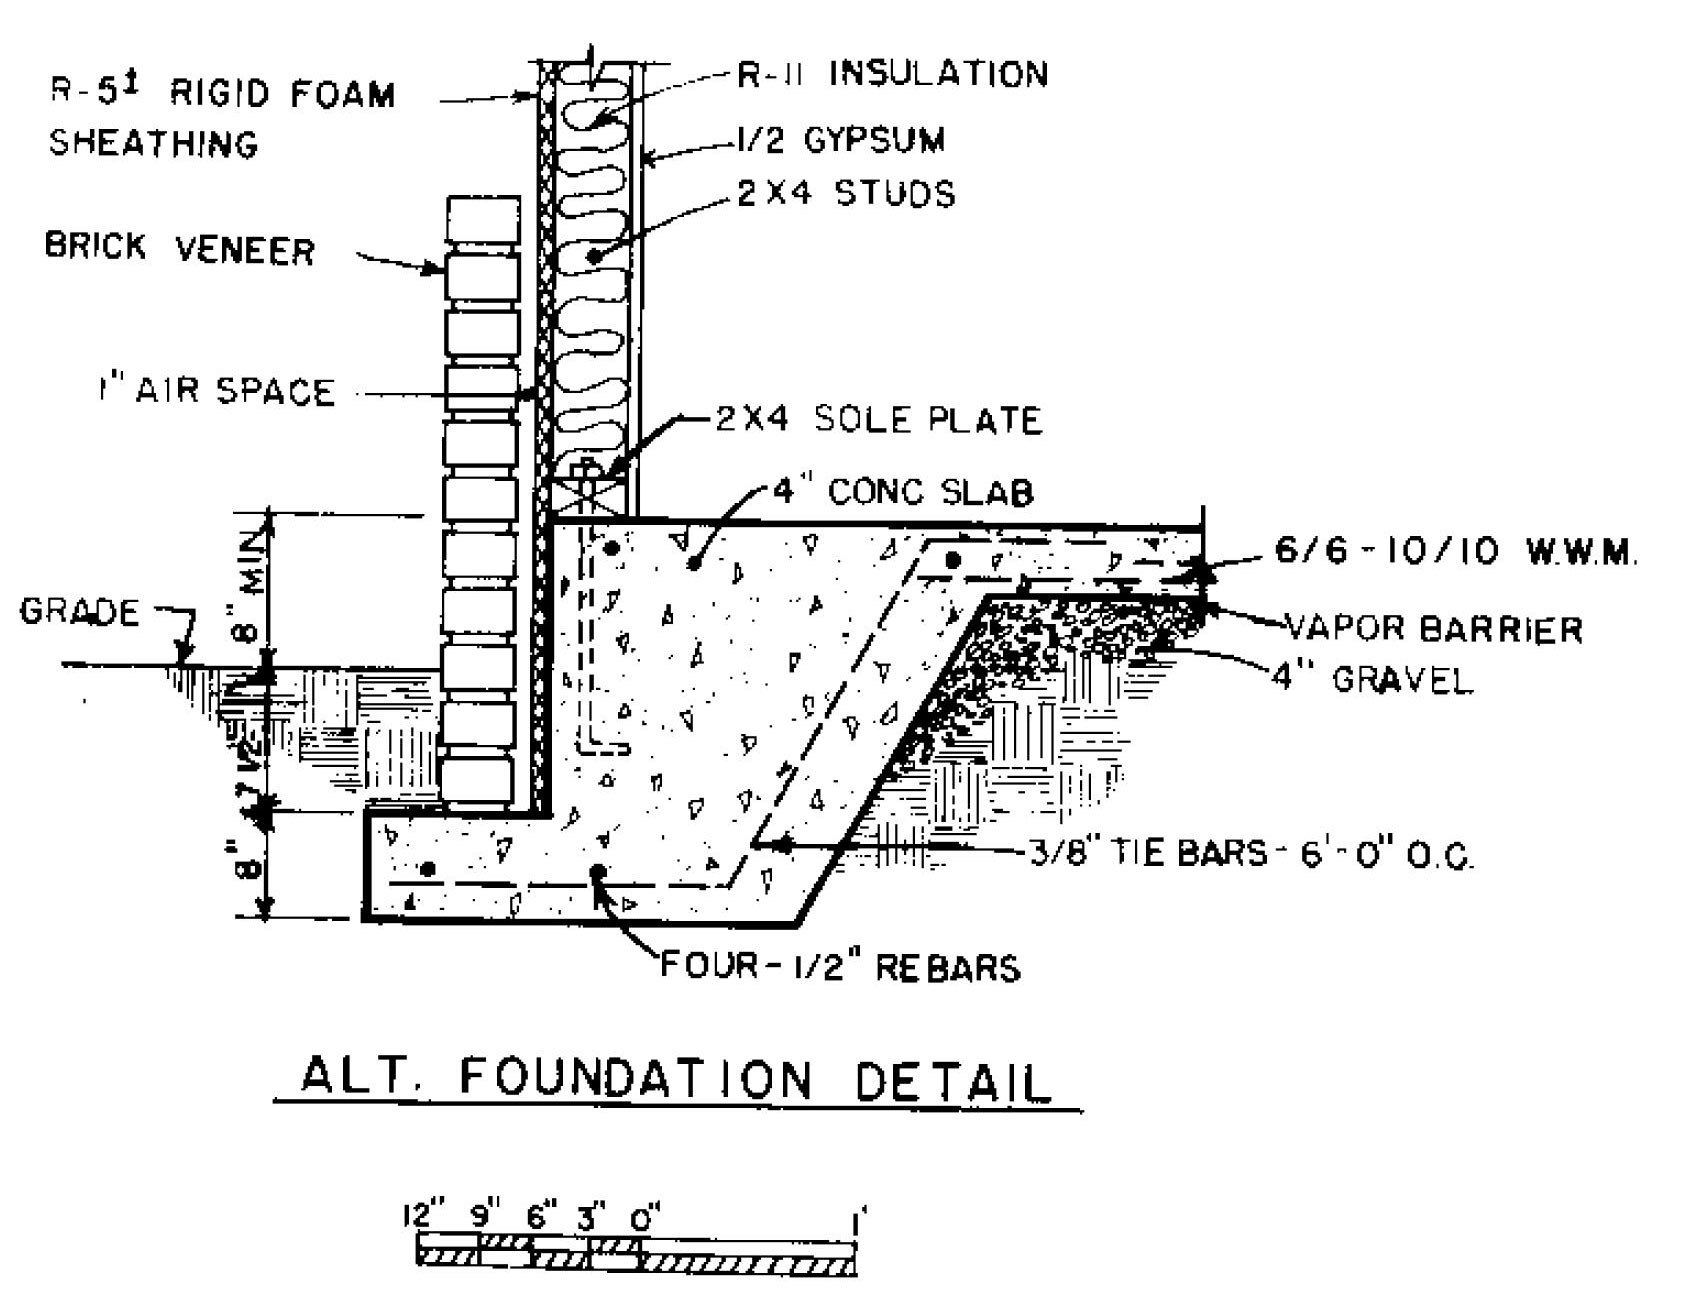 Concrete Slab On Grade Design Spreadsheet Intended For Pile Foundation Analysis And Design Pdf Do It Yourself Concrete Pier